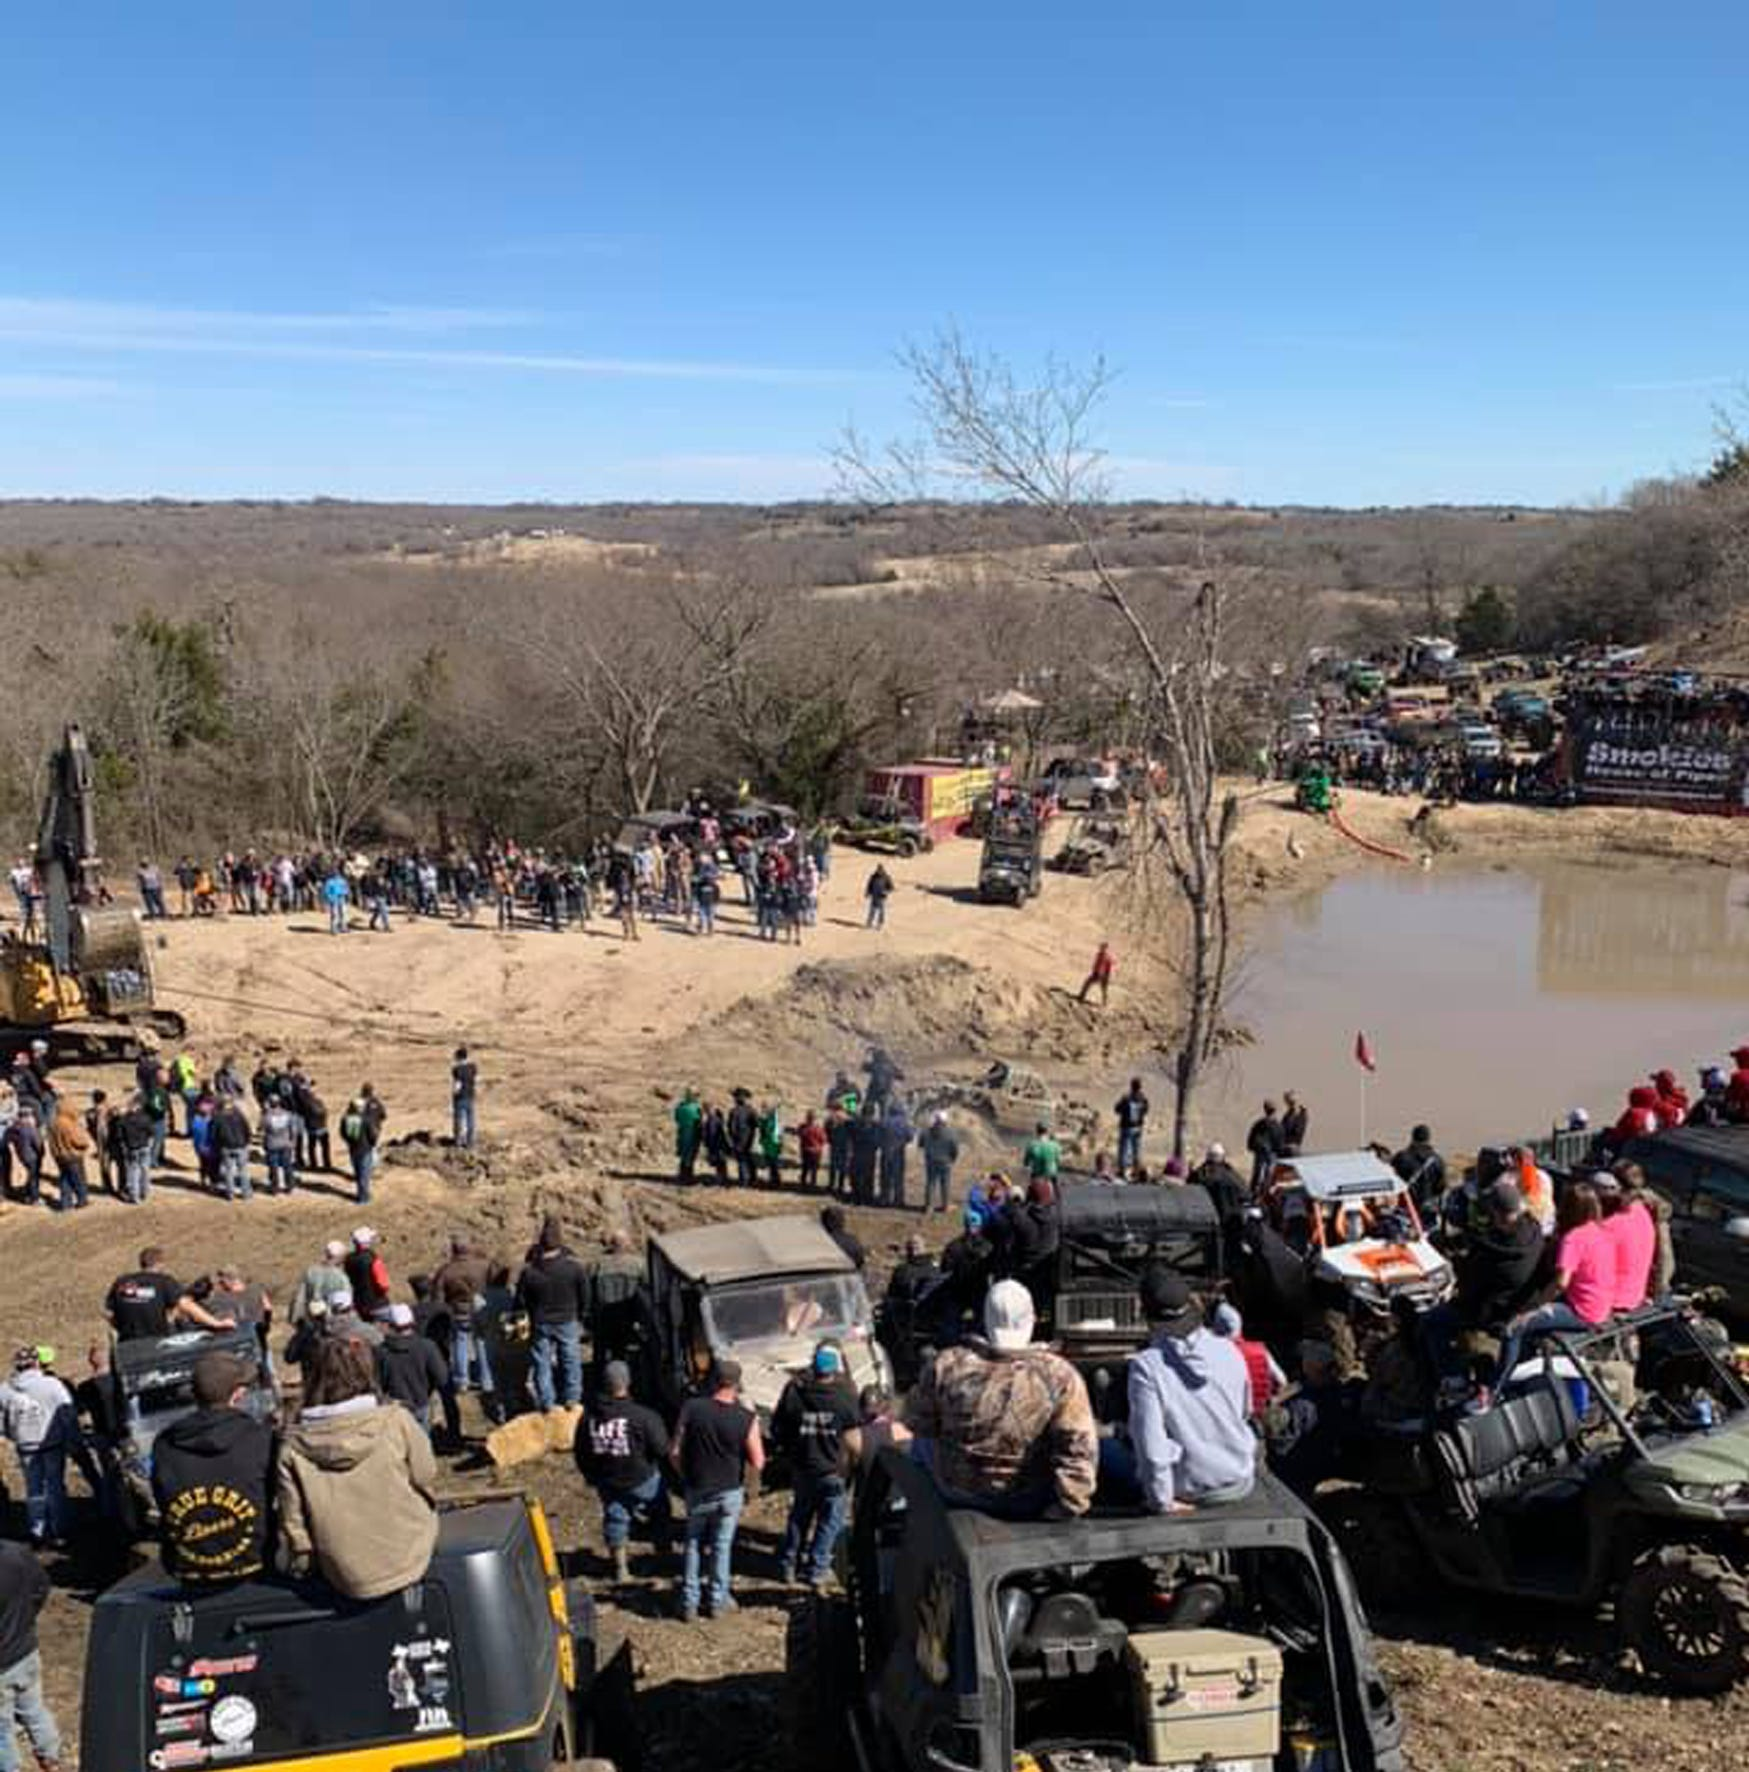 Participant at Rednecks with Paychecks off-road venue dies from injuries